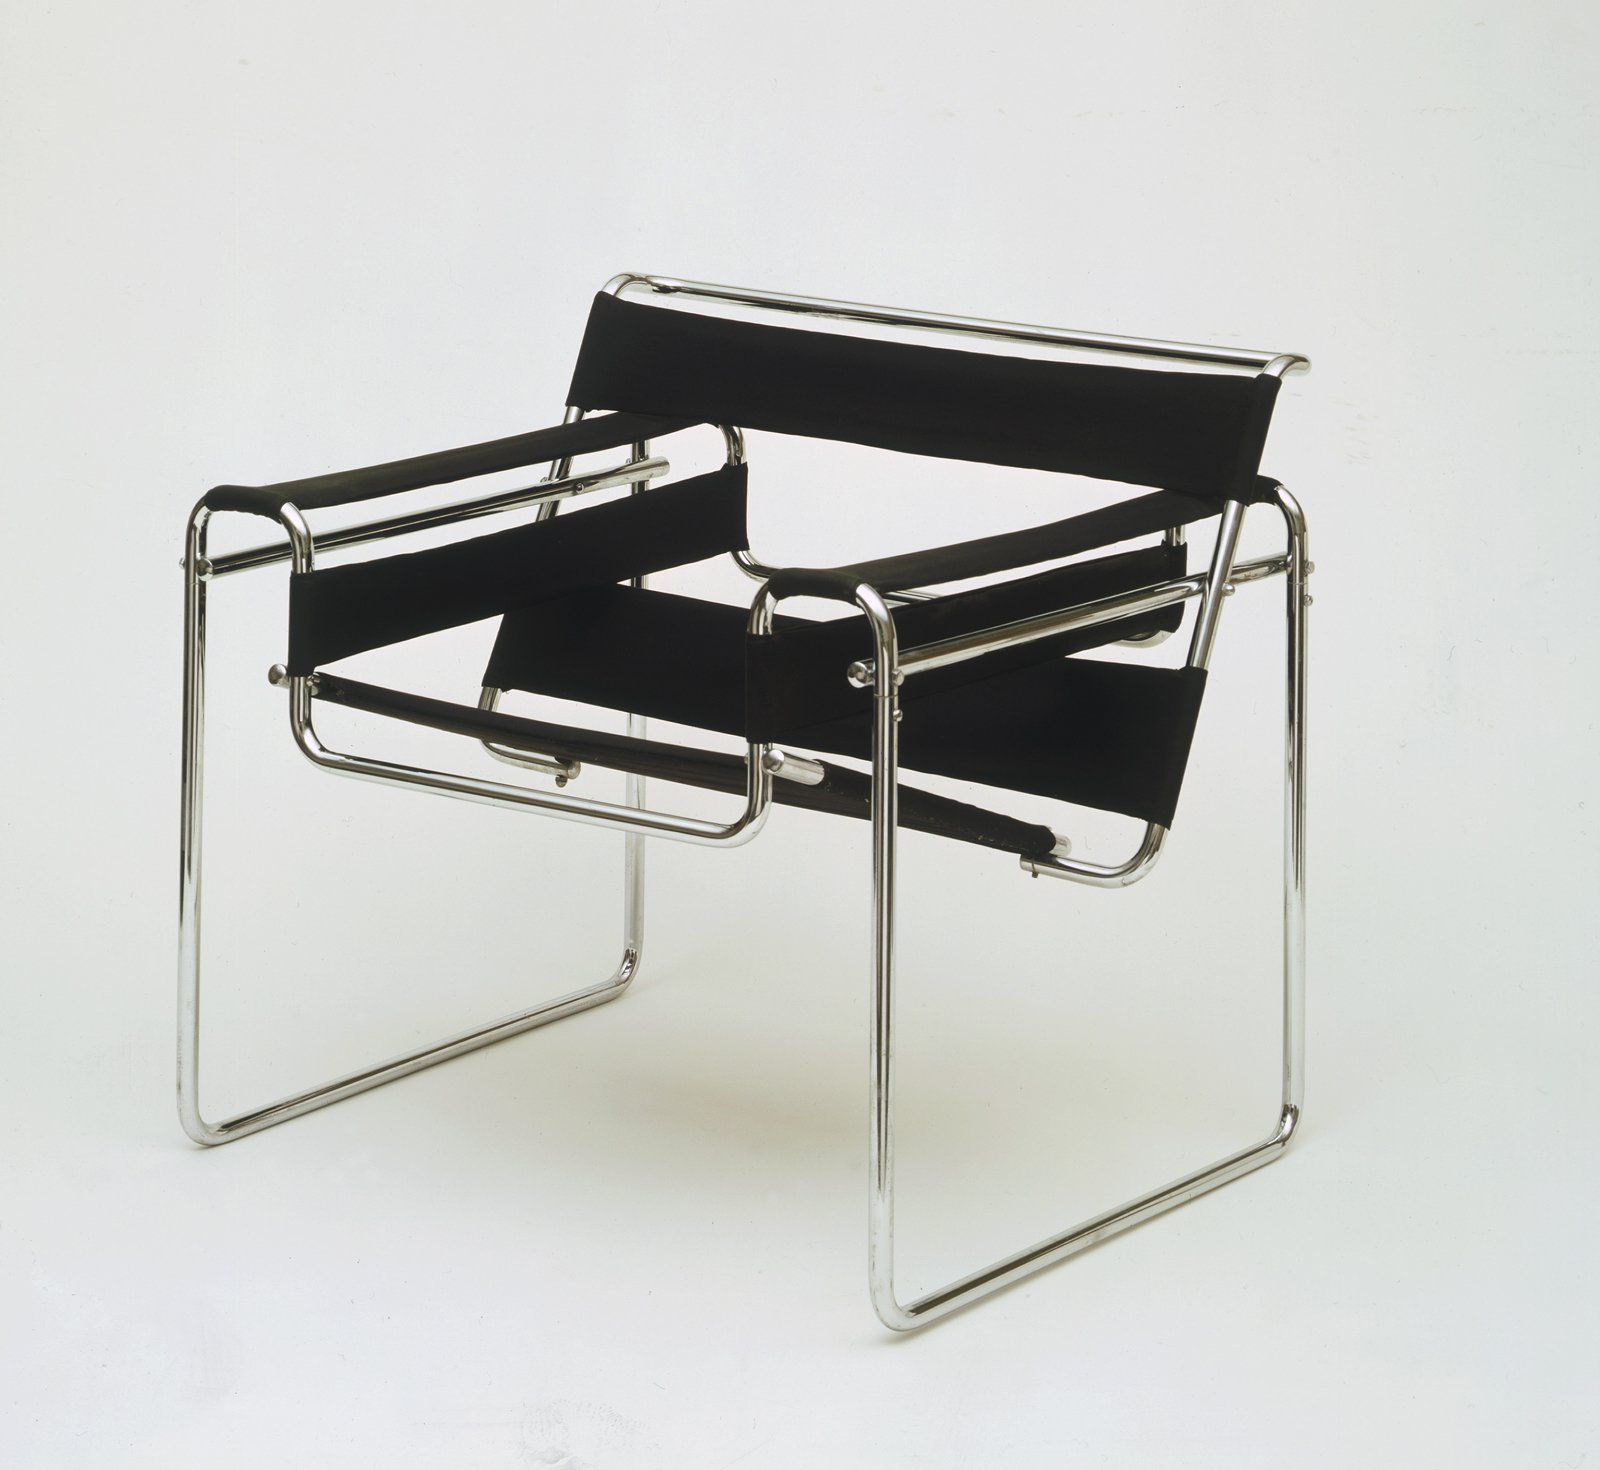 The Wassily Chair by Marcel Breuer, designed in 1925 and partially inspired by his interest in the tubular components of his bicycle.  Photo 6 of 10 in 100 Years of Bauhaus: What You Should Know About This Milestone Movement from Final Weekend: Bauhaus at MoMA